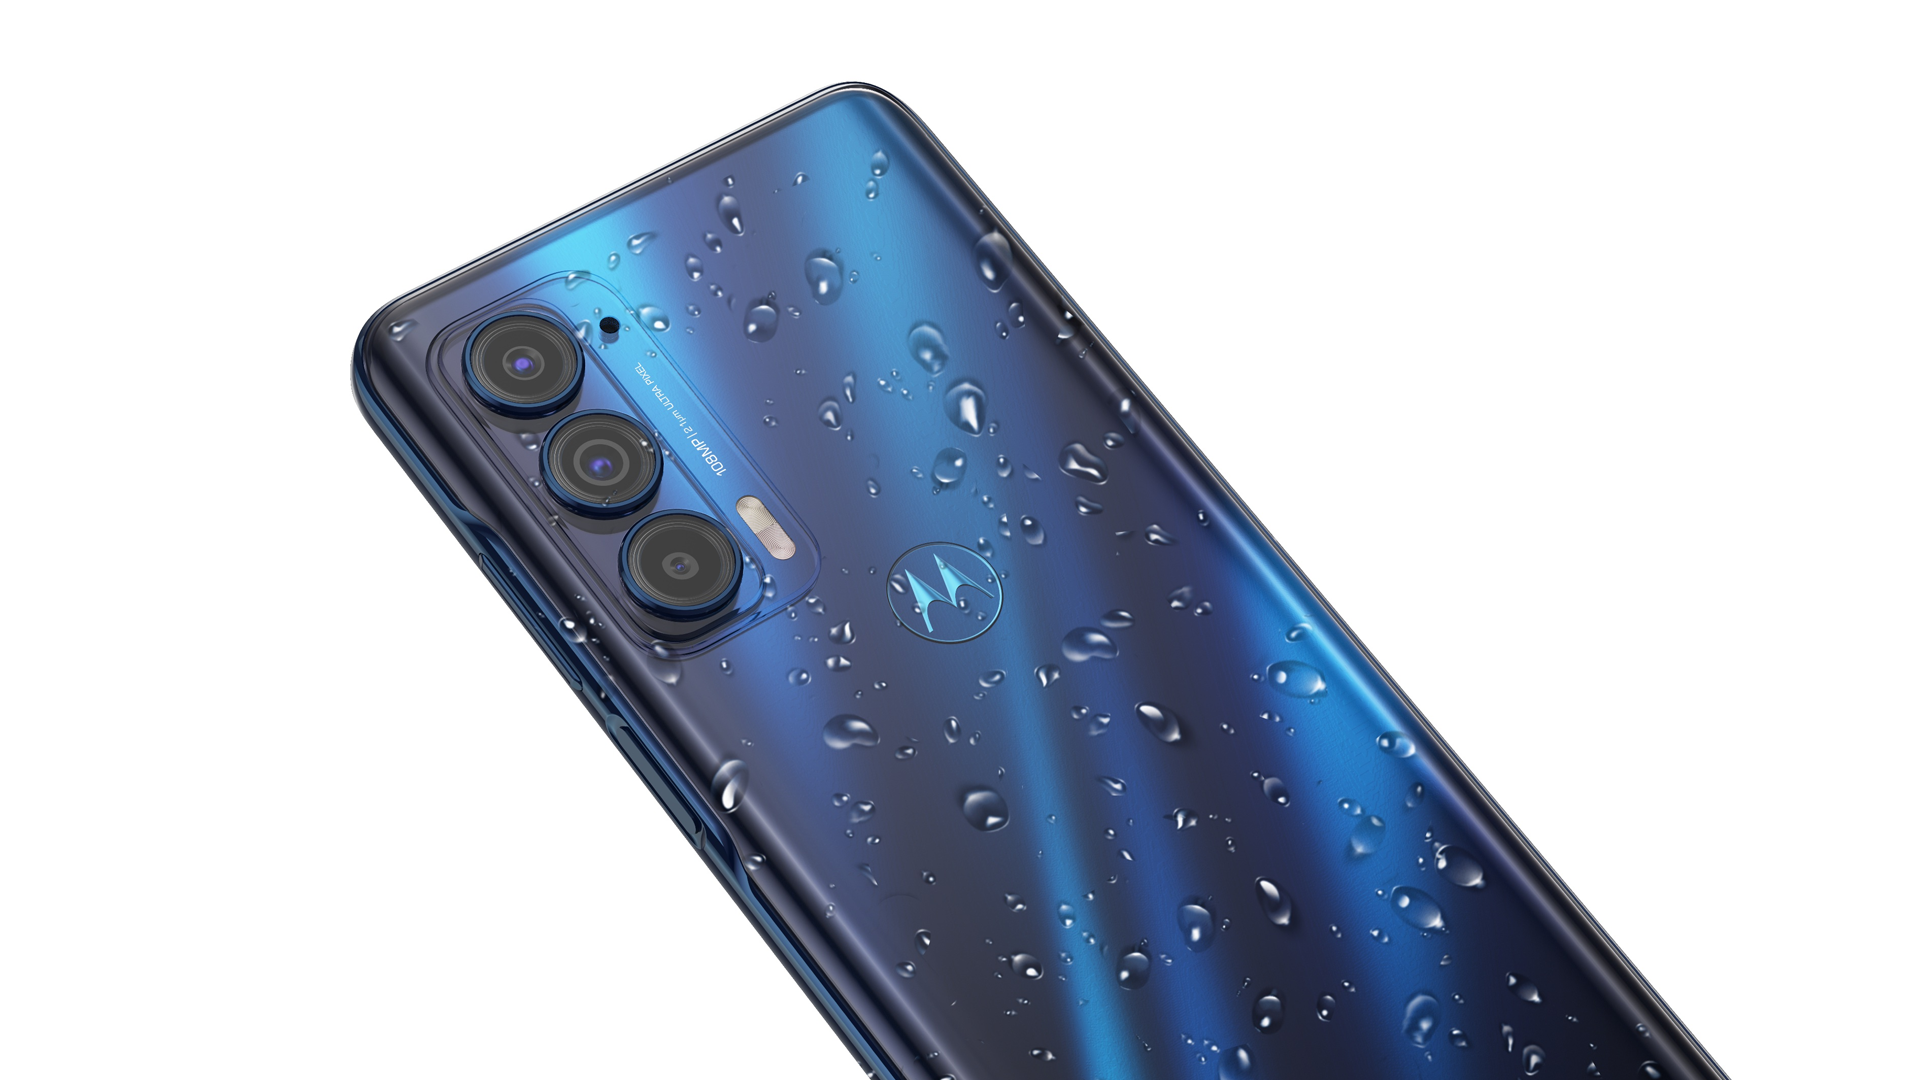 The 2021 Motorola Edge in blue covered in water.